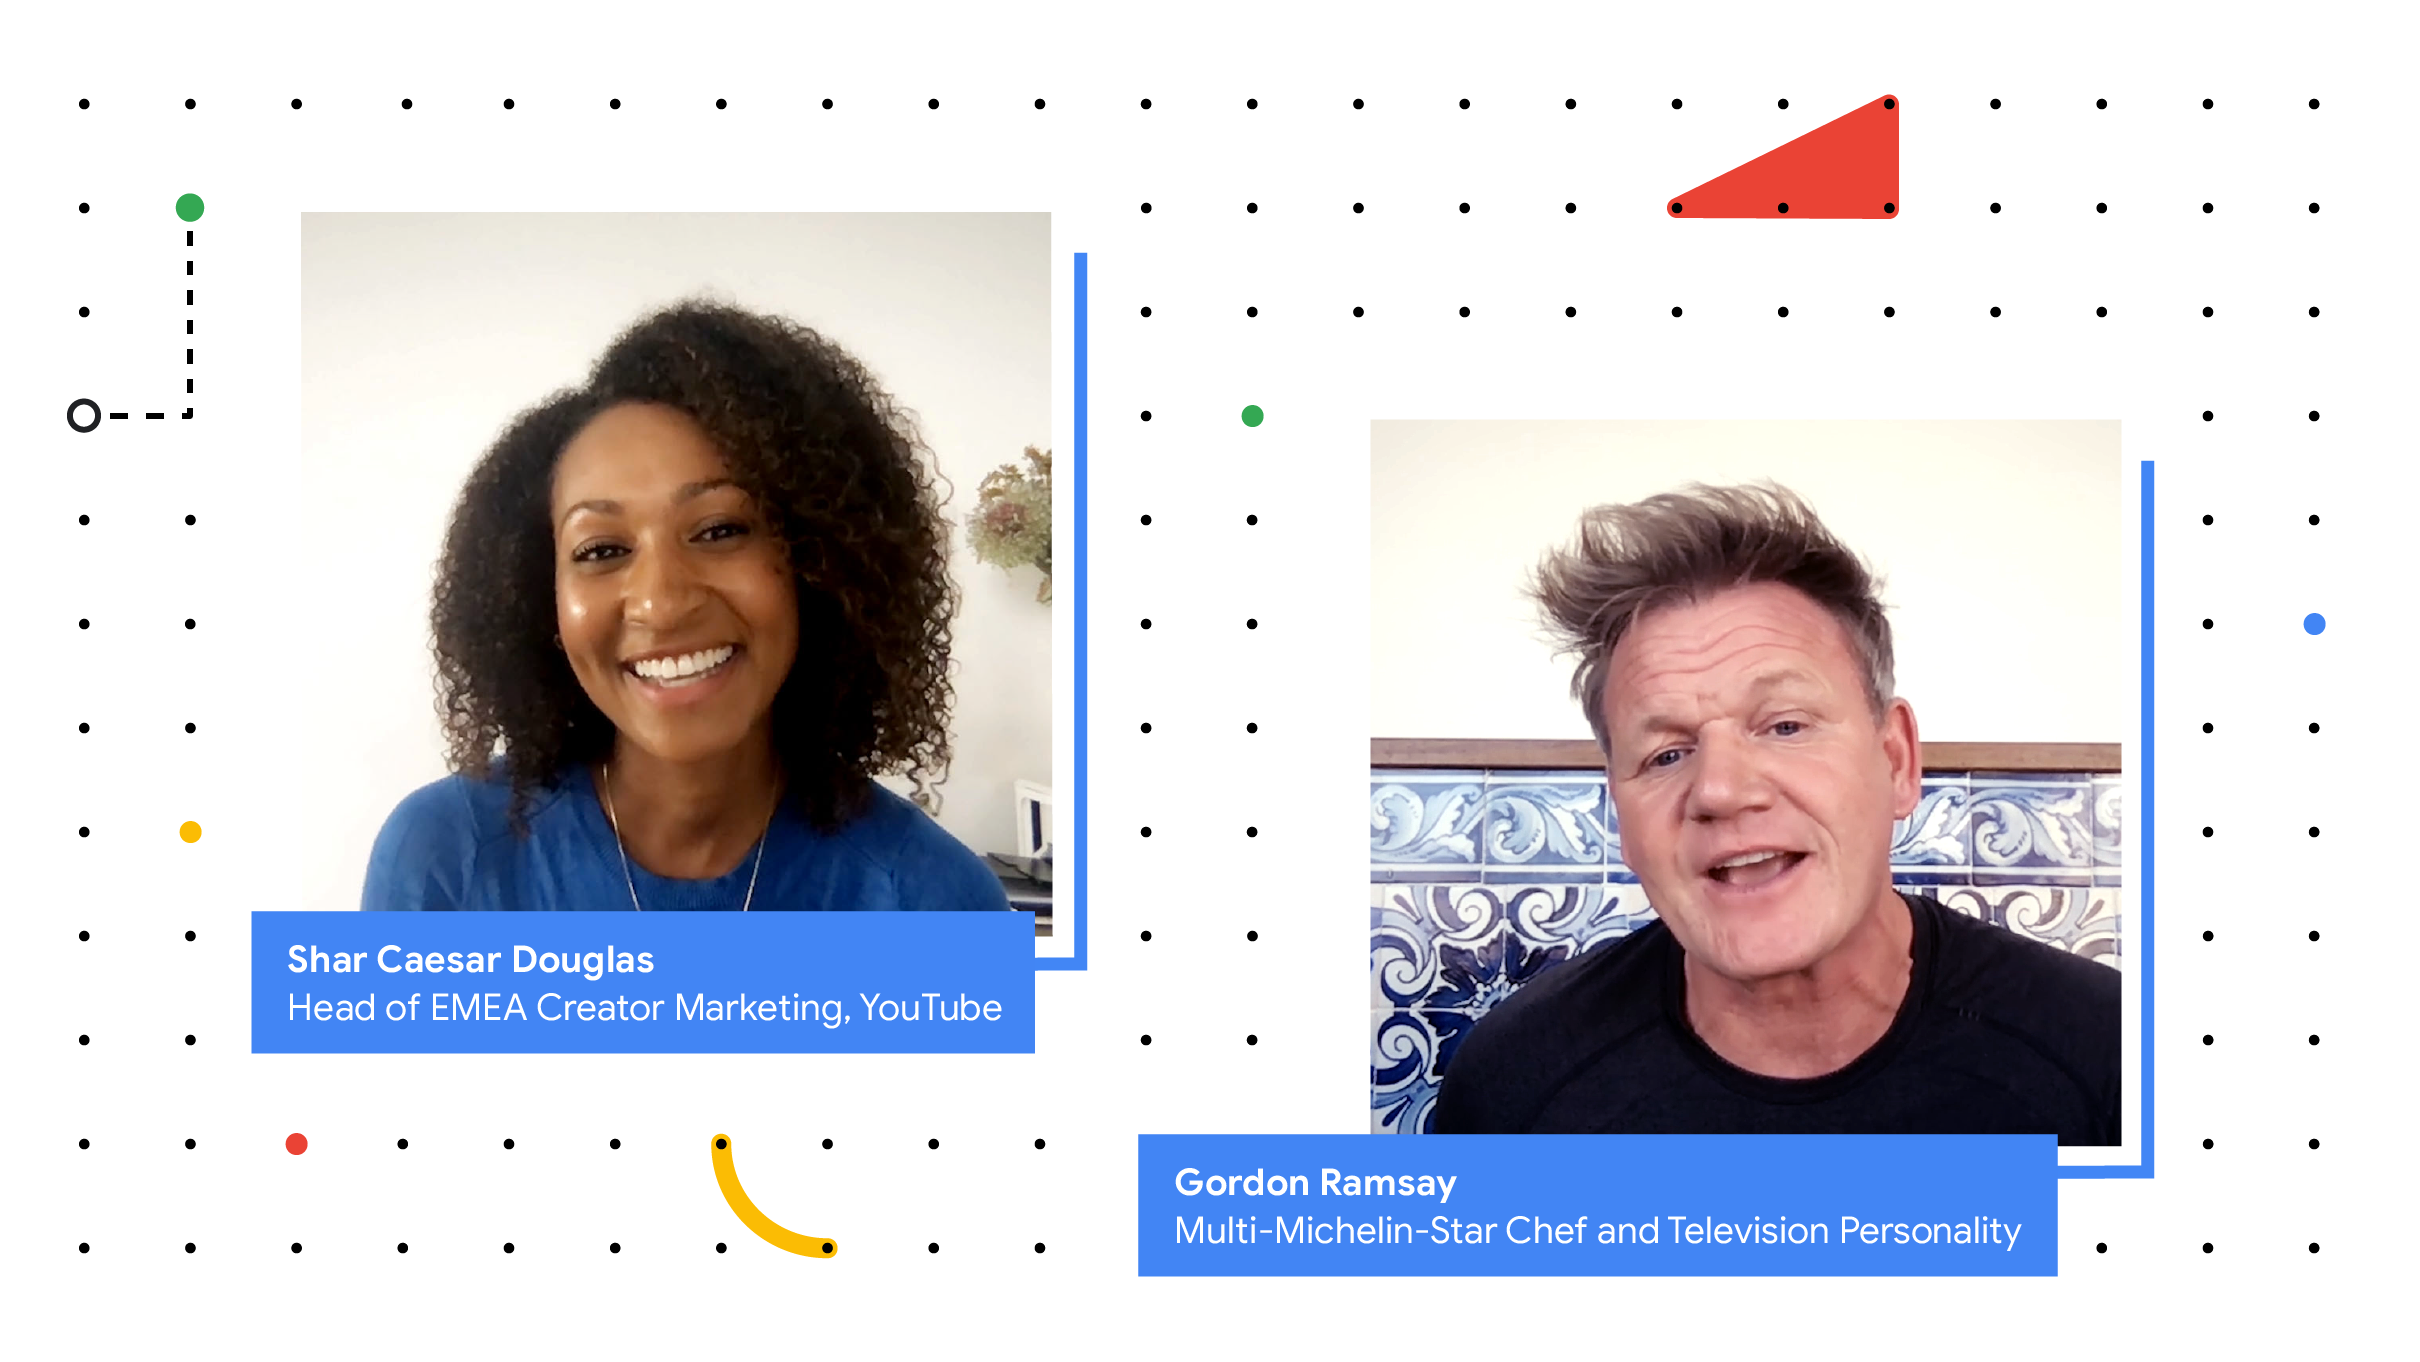 The Update: Gordon Ramsay on YouTube Strategy